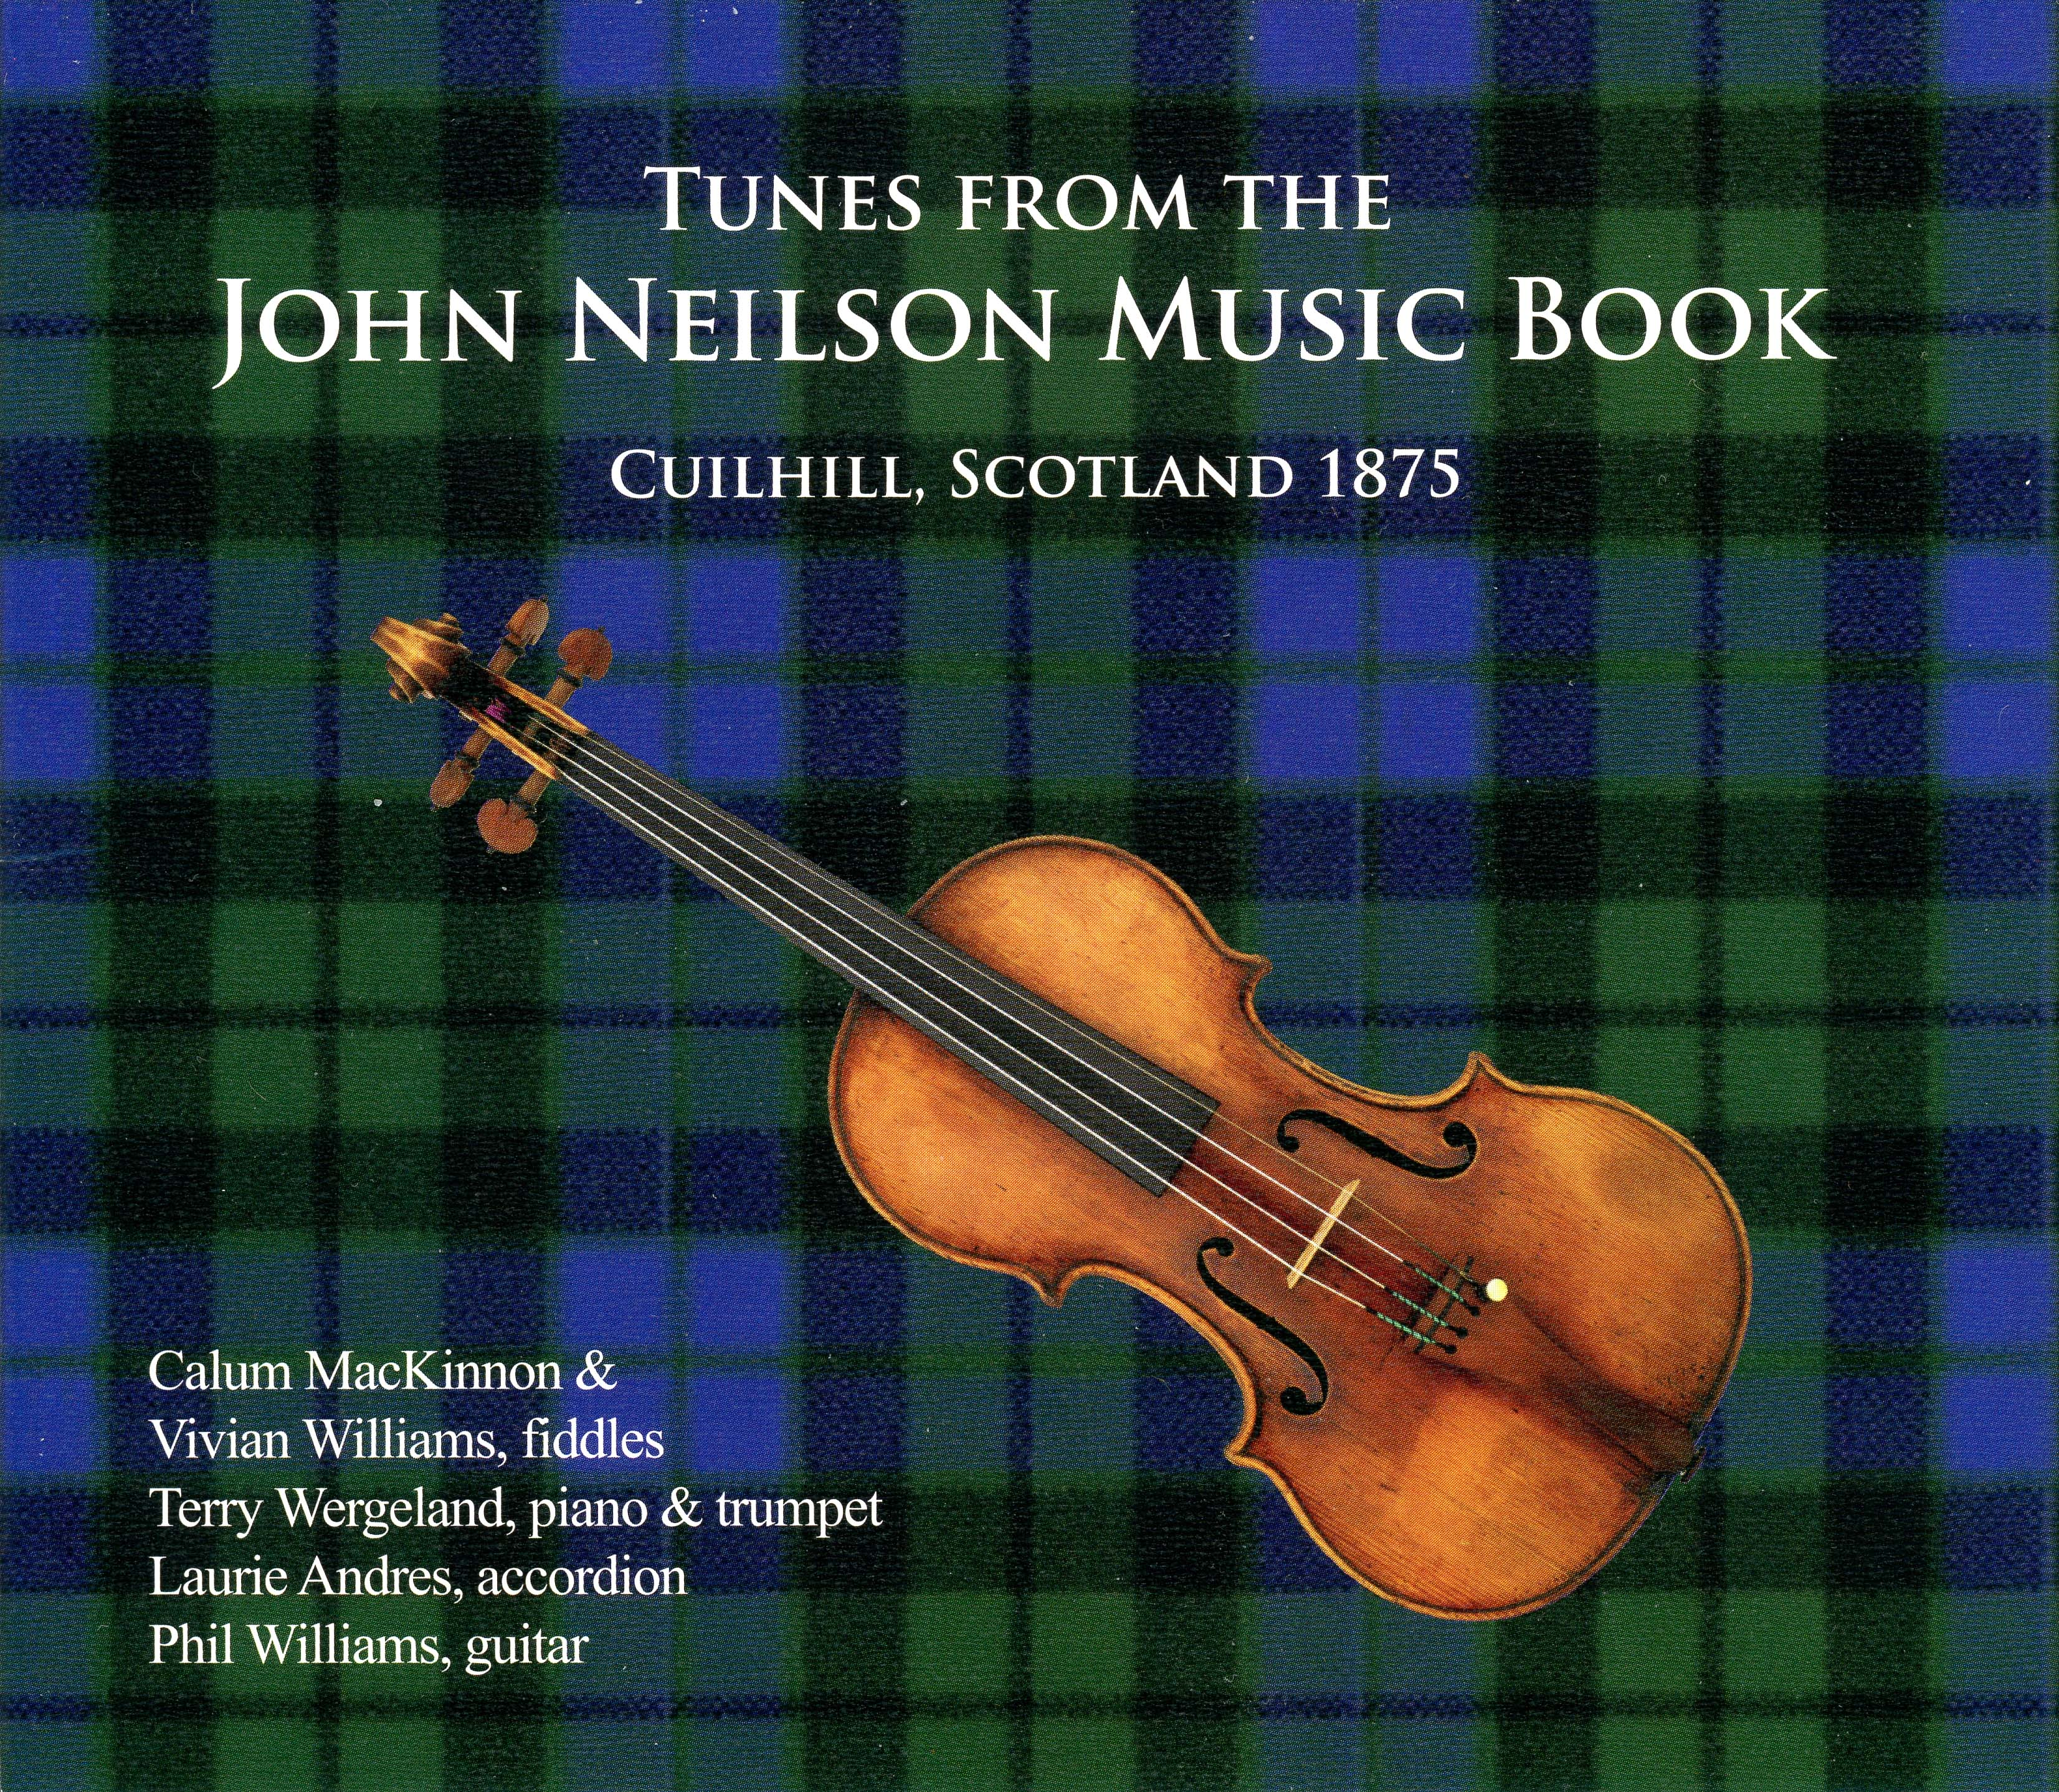 Catalog of Compact Discs Traditional Fiddle, Dance, and String Band